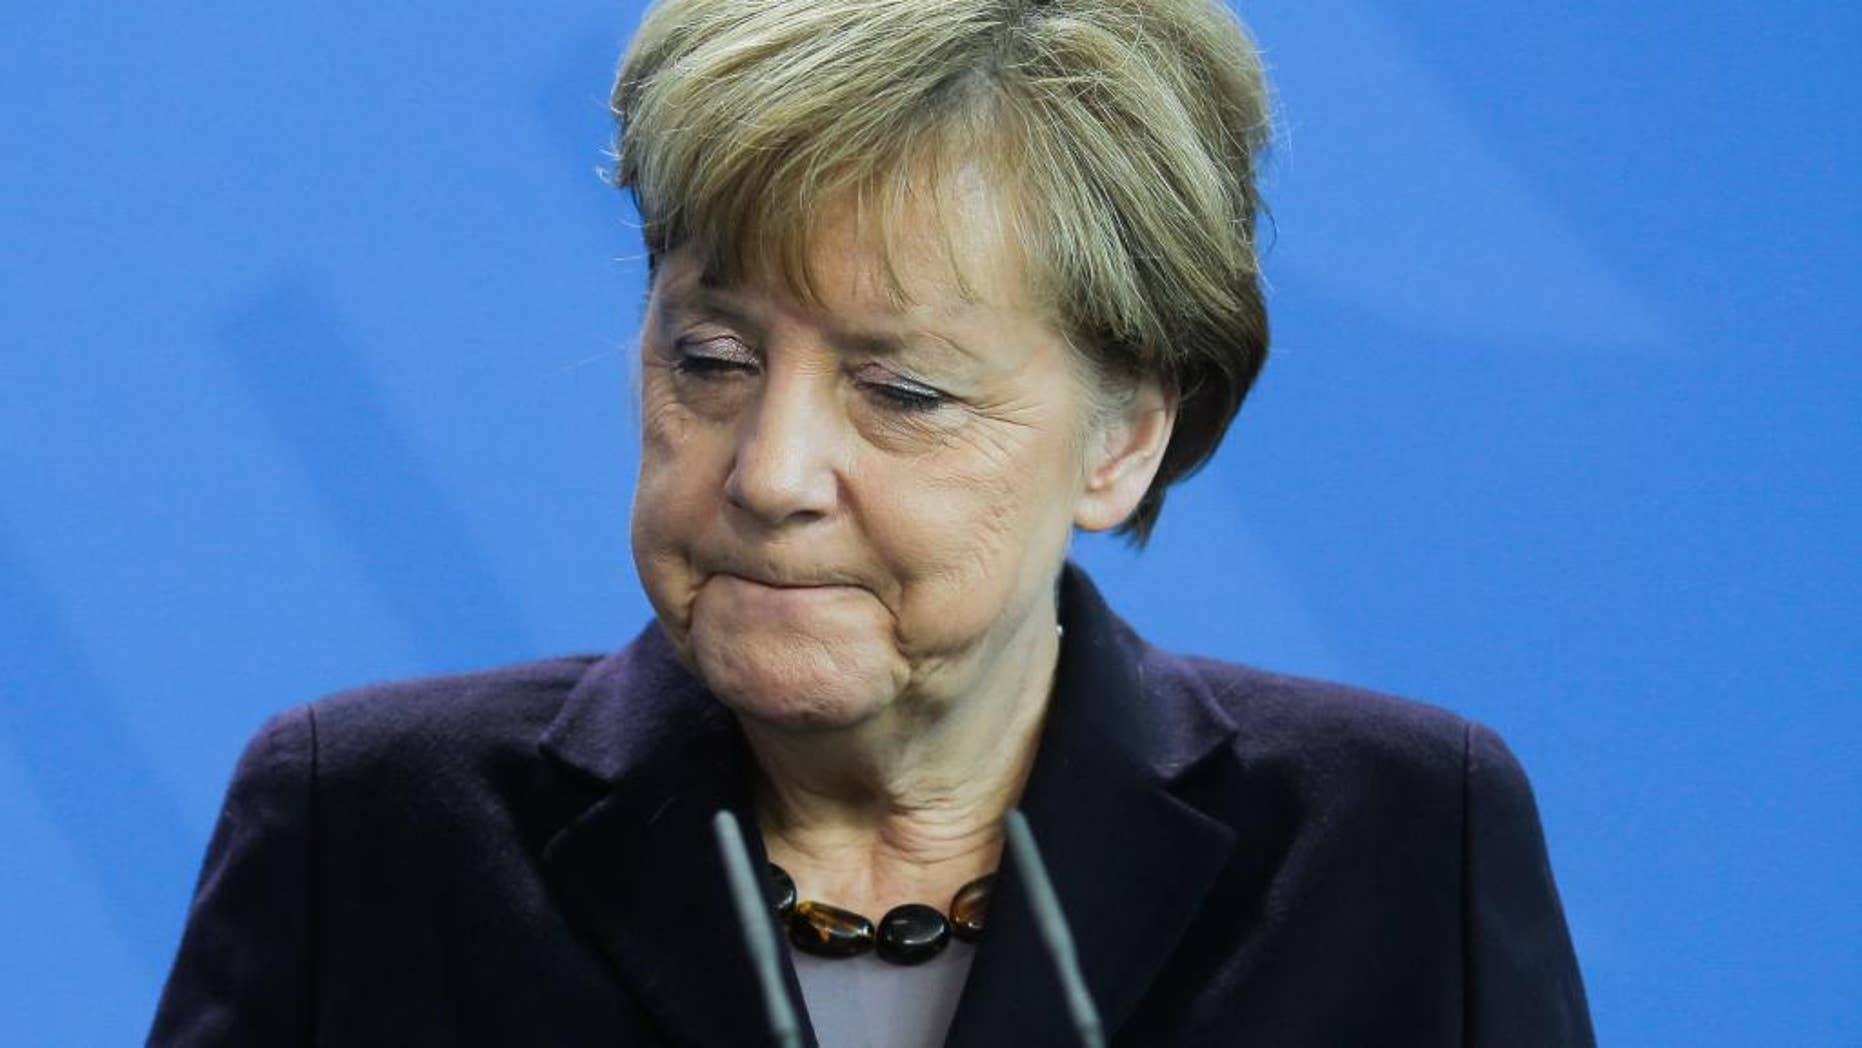 German Chancellor Angela Merkel answers  questions during a news conference with  the President of Honduras Juan Orlando Hernandez, at the chancellery, in Berlin, Tuesday, Oct. 27, 2015. (AP Photo/Markus Schreiber)